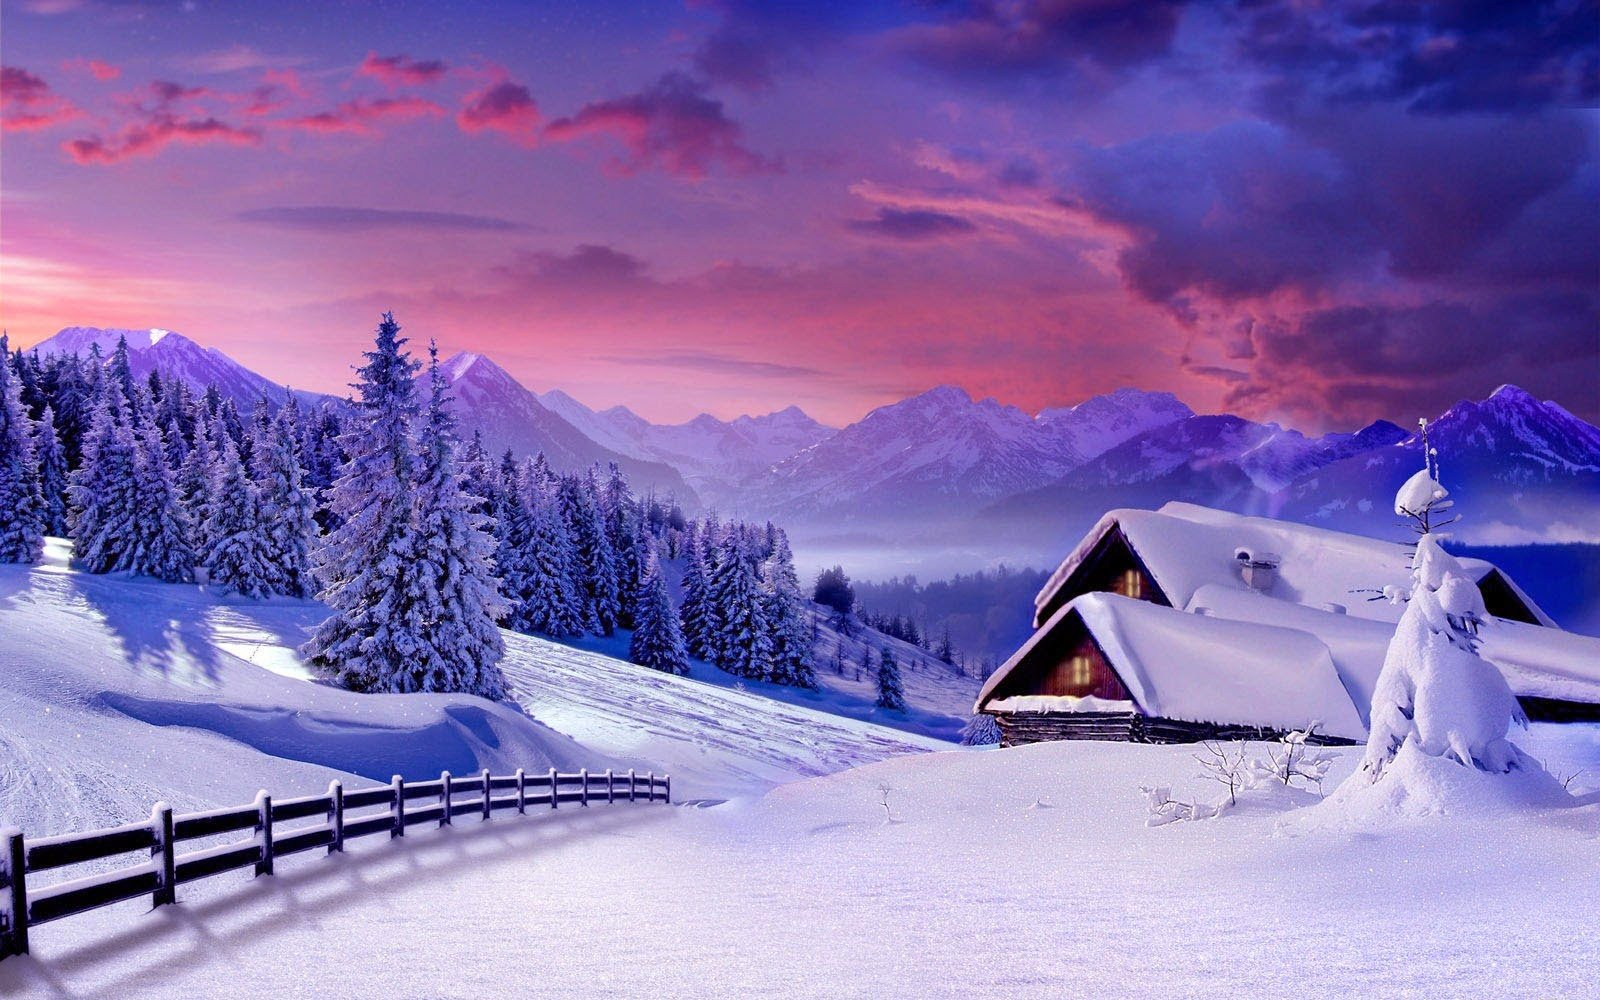 Winter Scenery Wallpapers Beautiful Winter Scenery Desktop Wallpapers 1600x1000